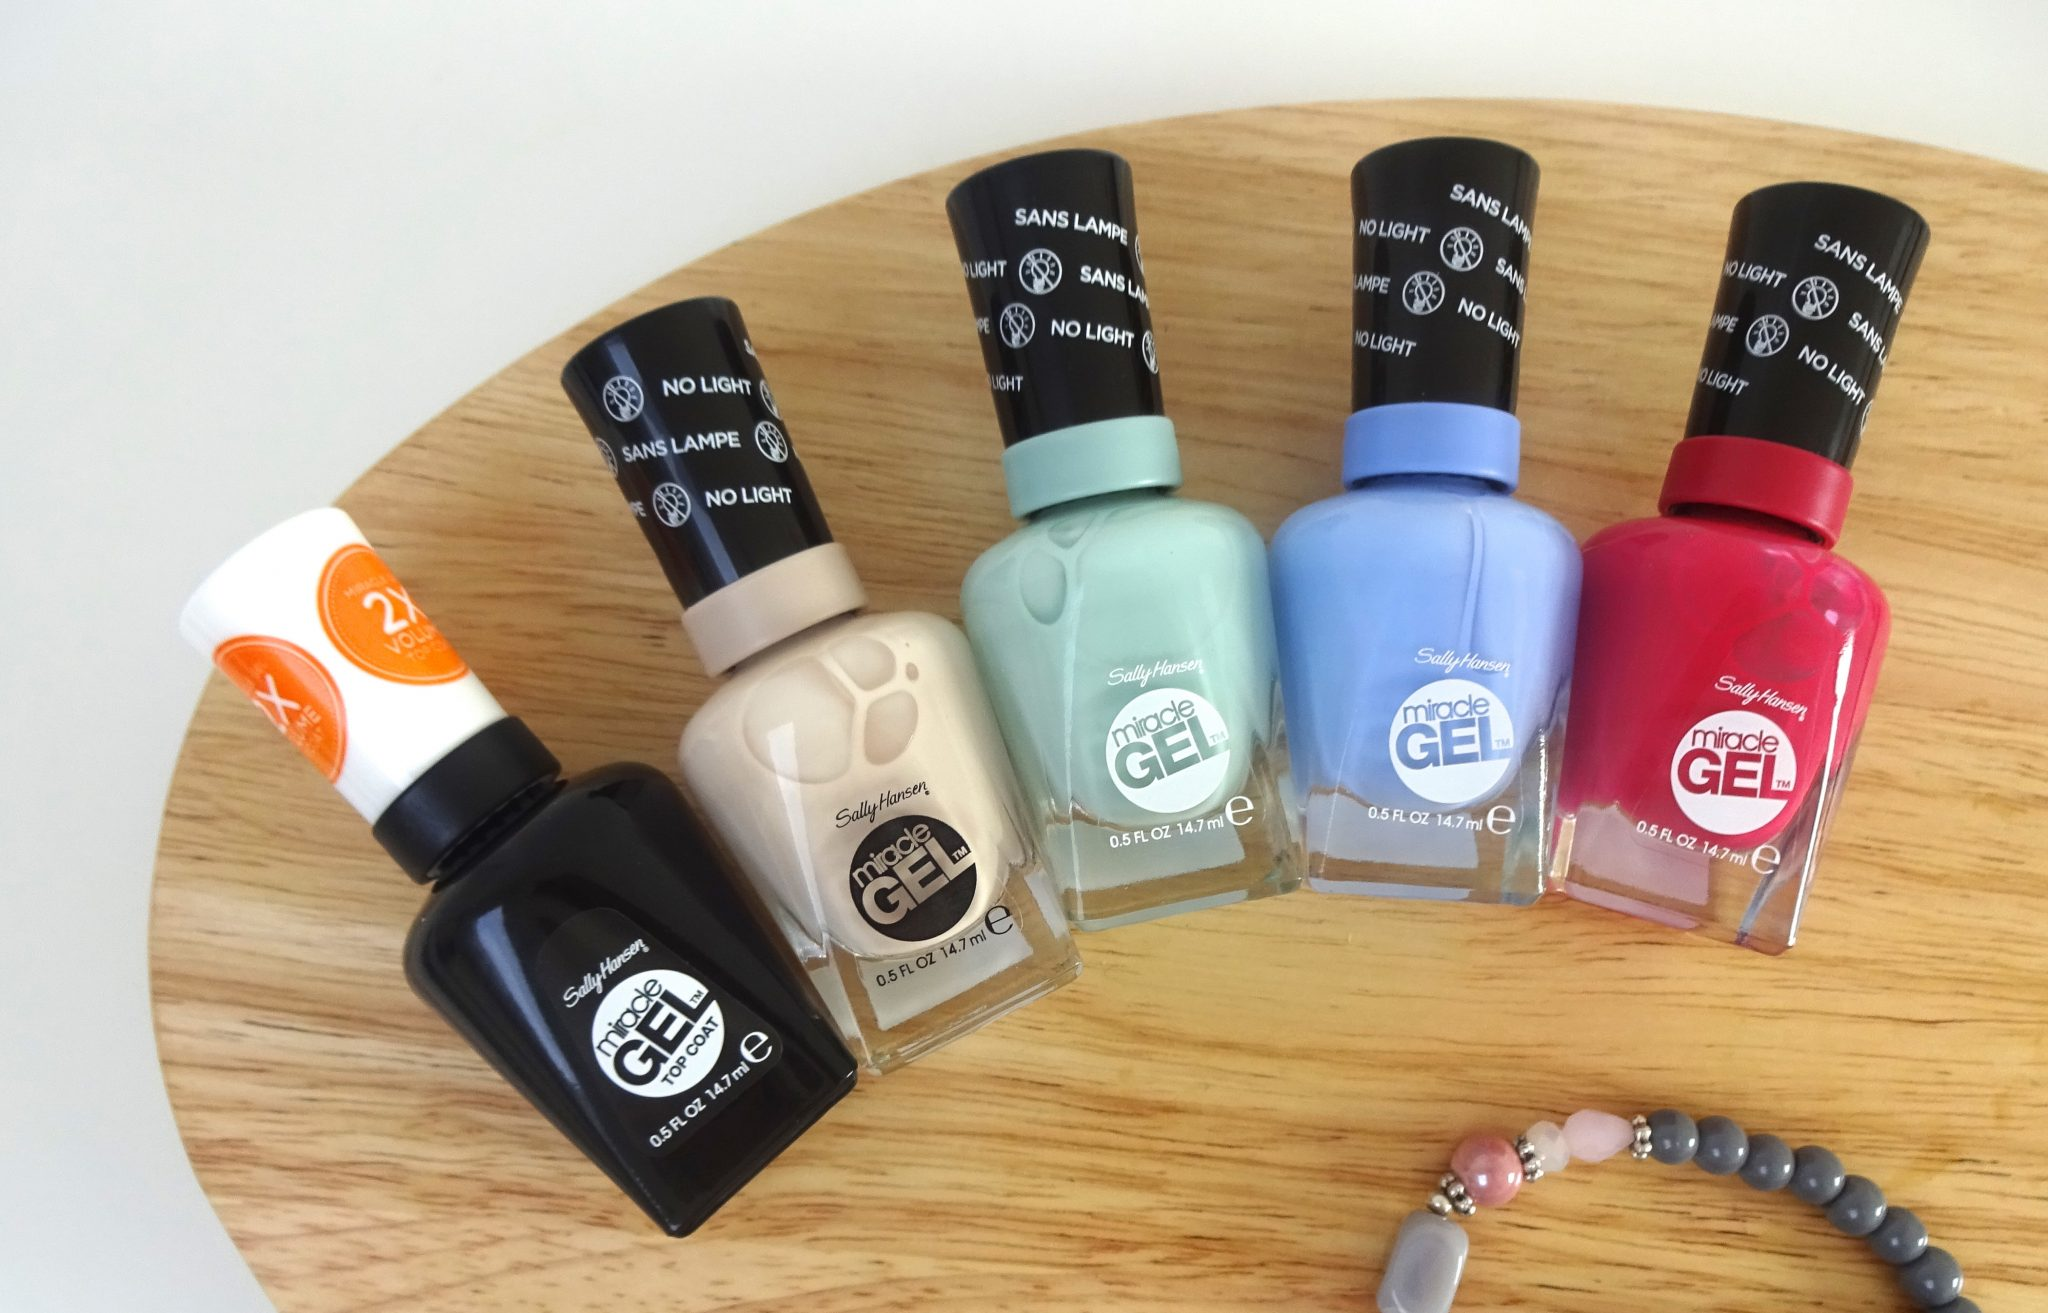 Sally Hansen Festival look